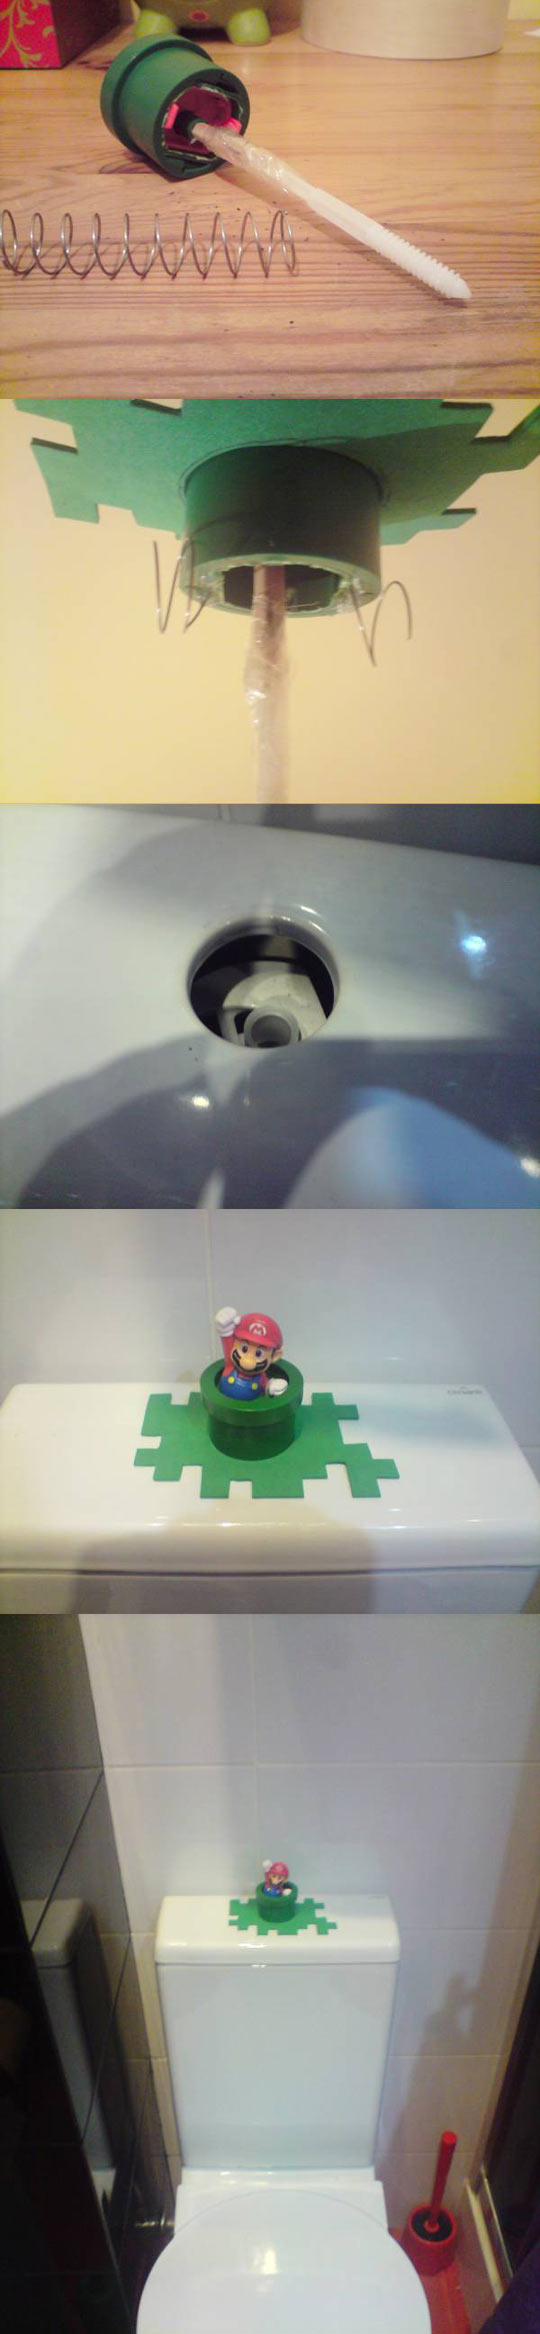 Super Mario Toilet Job